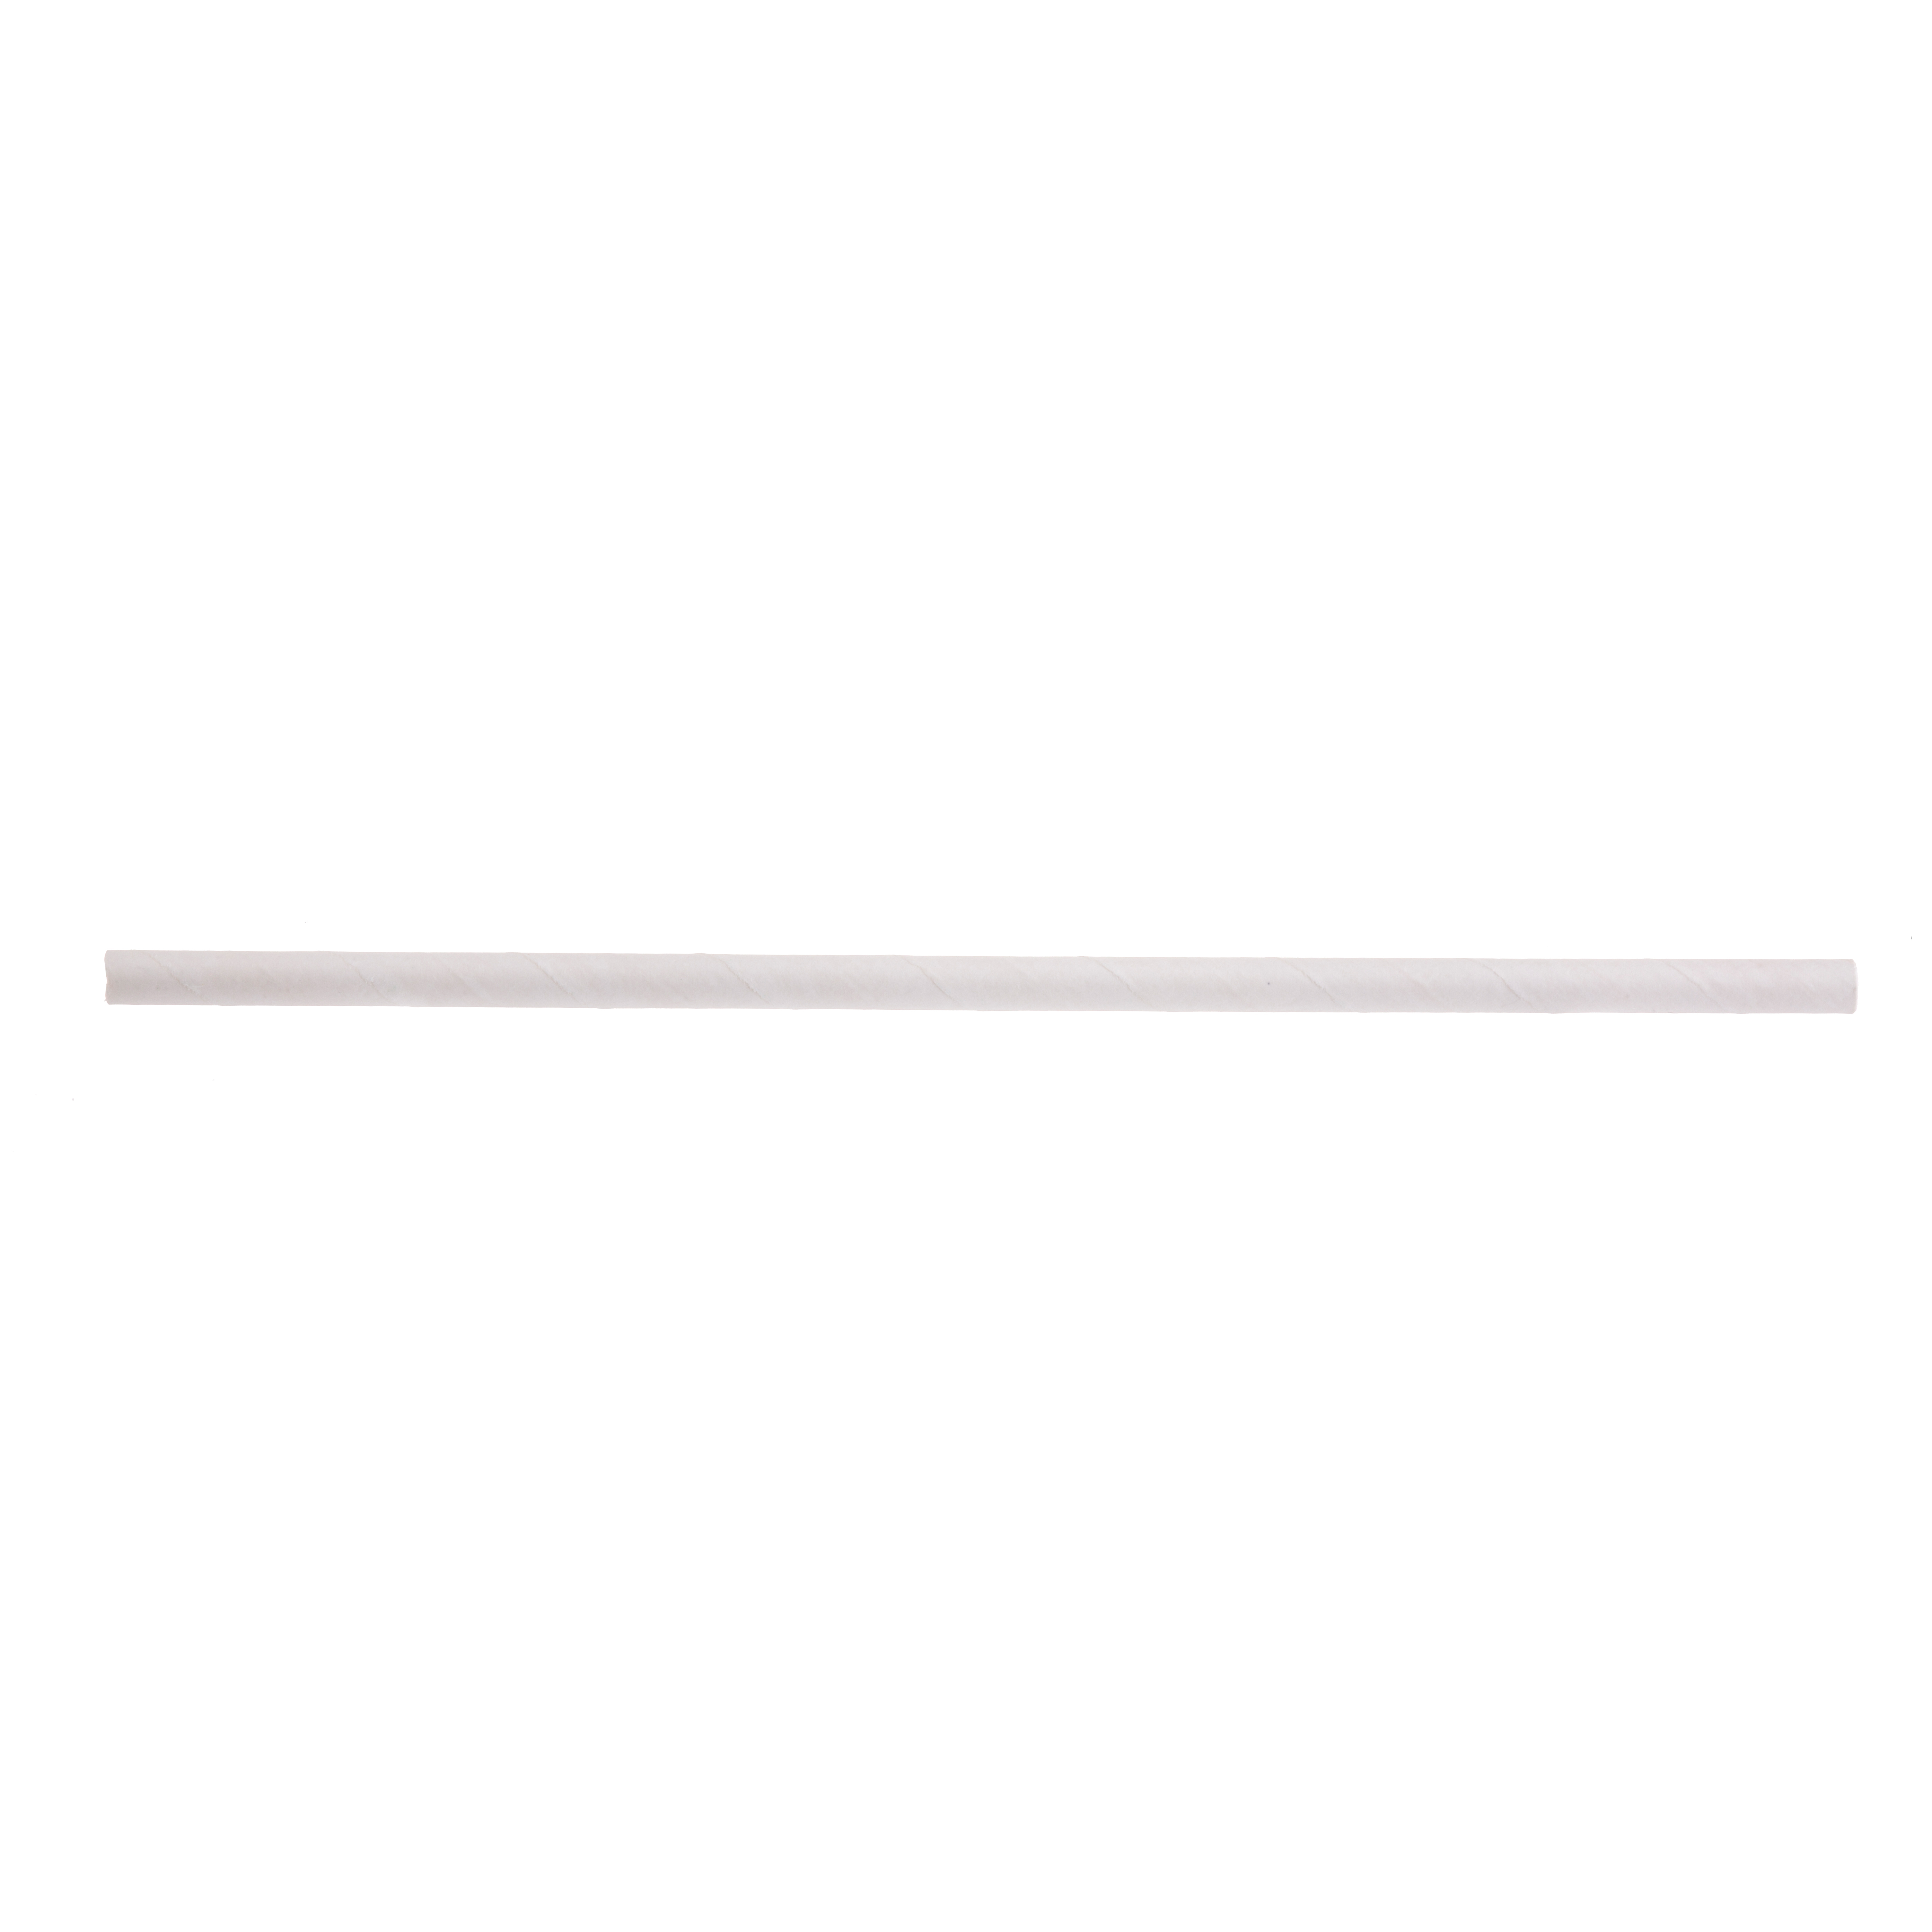 TableCraft Products 100131 straws